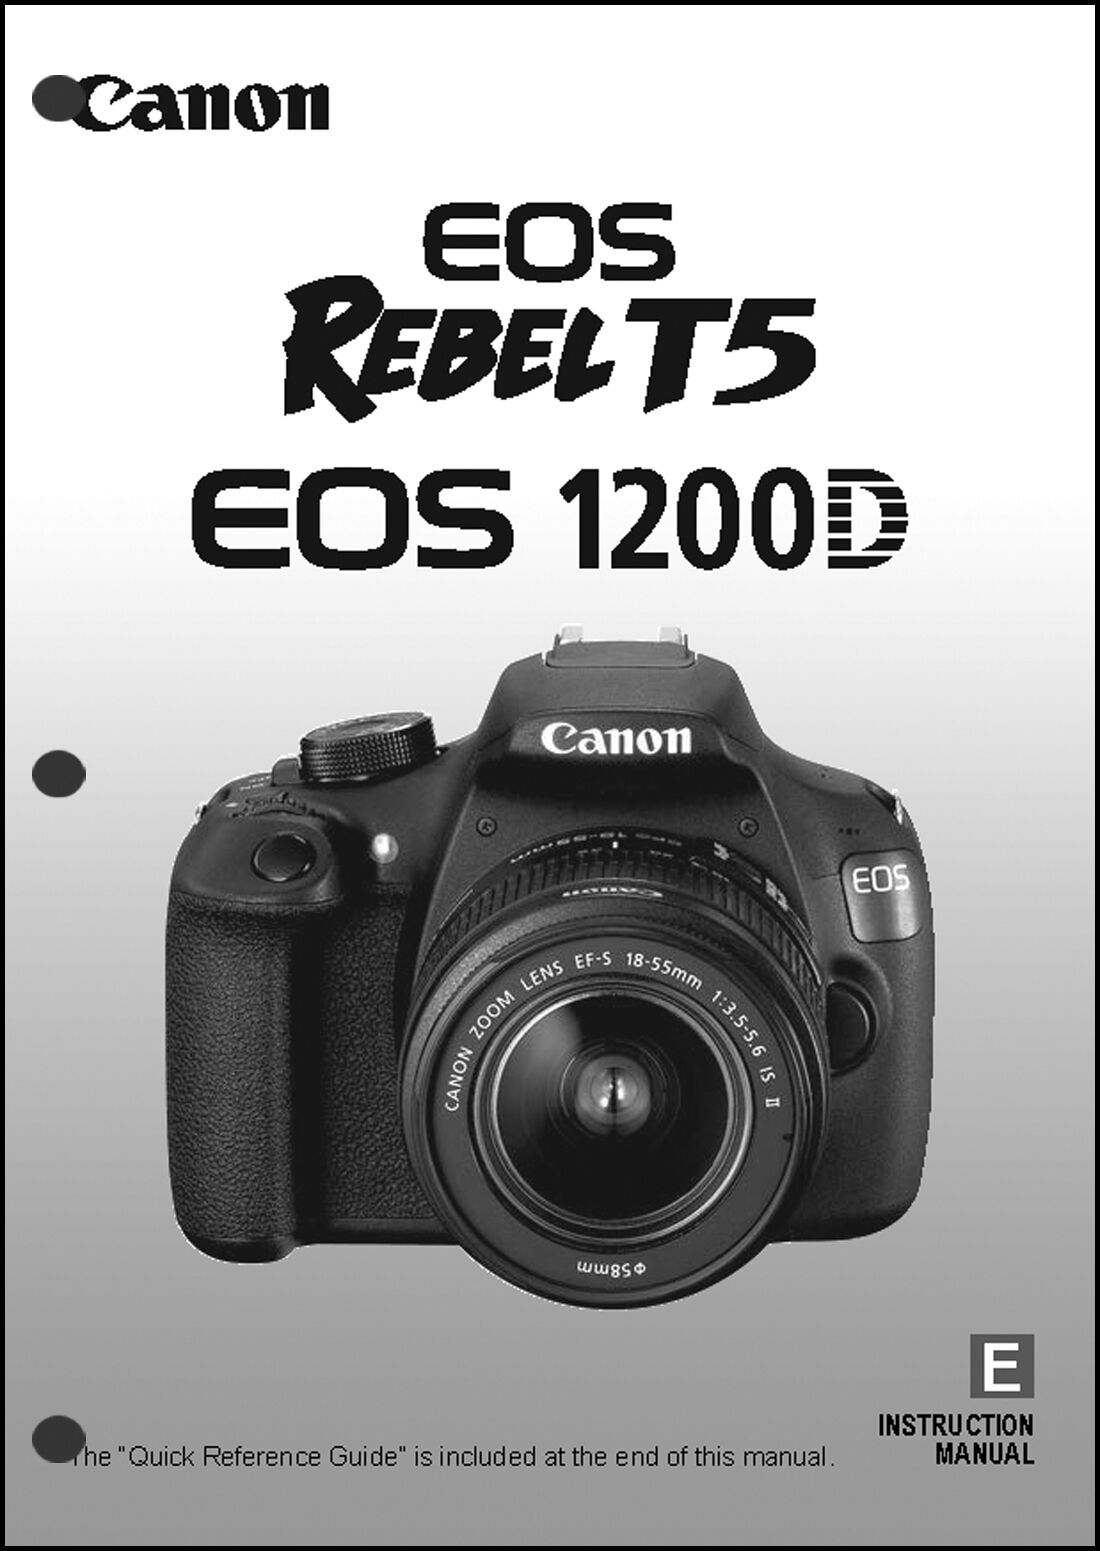 Canon REBEL T5 EOS 1200D Digital Camera User Instruction Guide Manual 1 of  1 See More